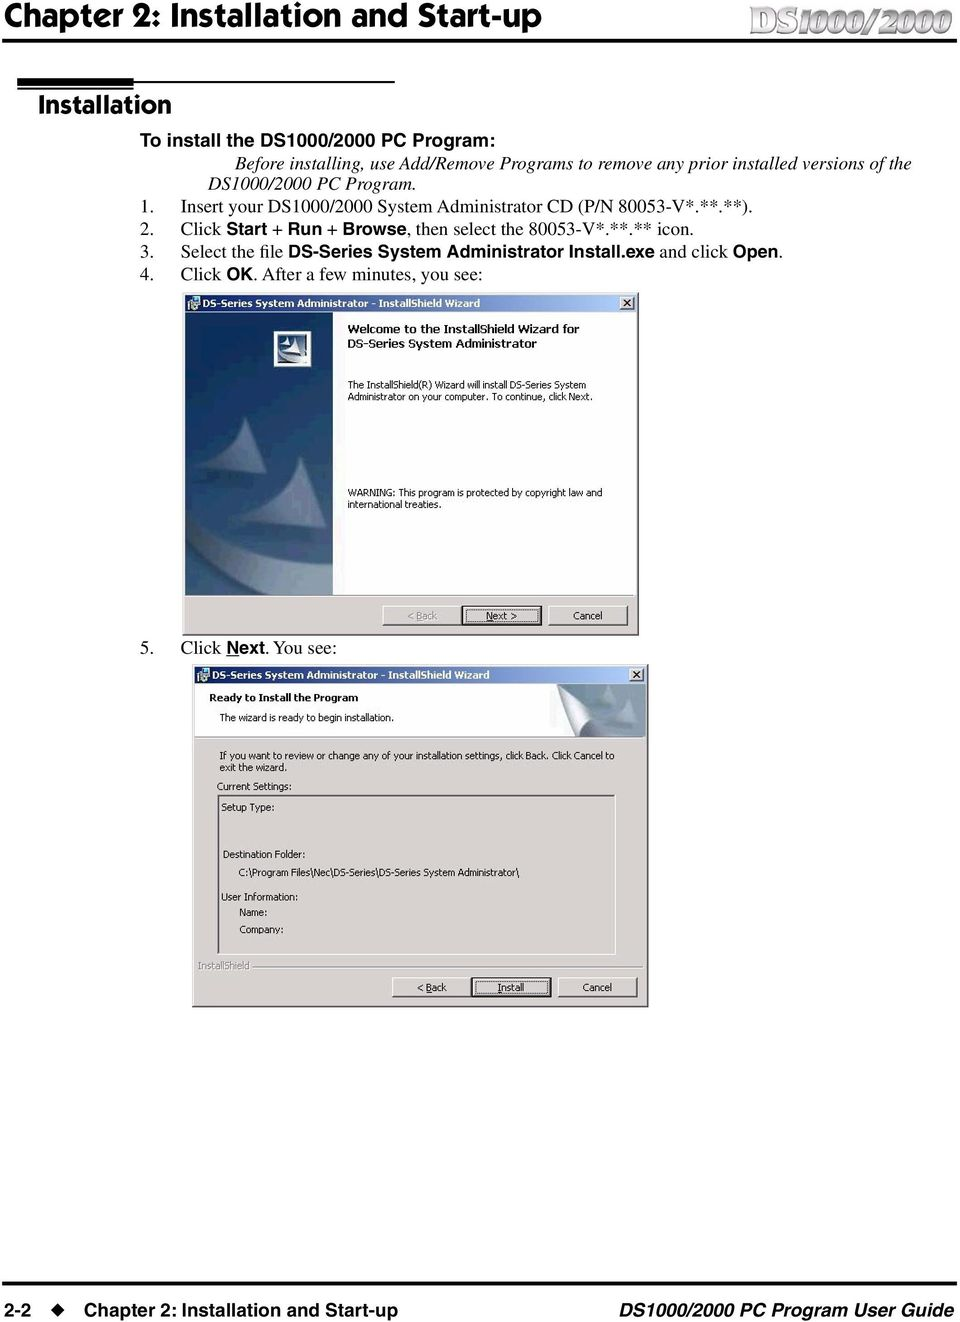 2. Click Start + Run + Browse, then select the 80053-V*.**.** icon. 3. Select the file DS-Series System Administrator Install.